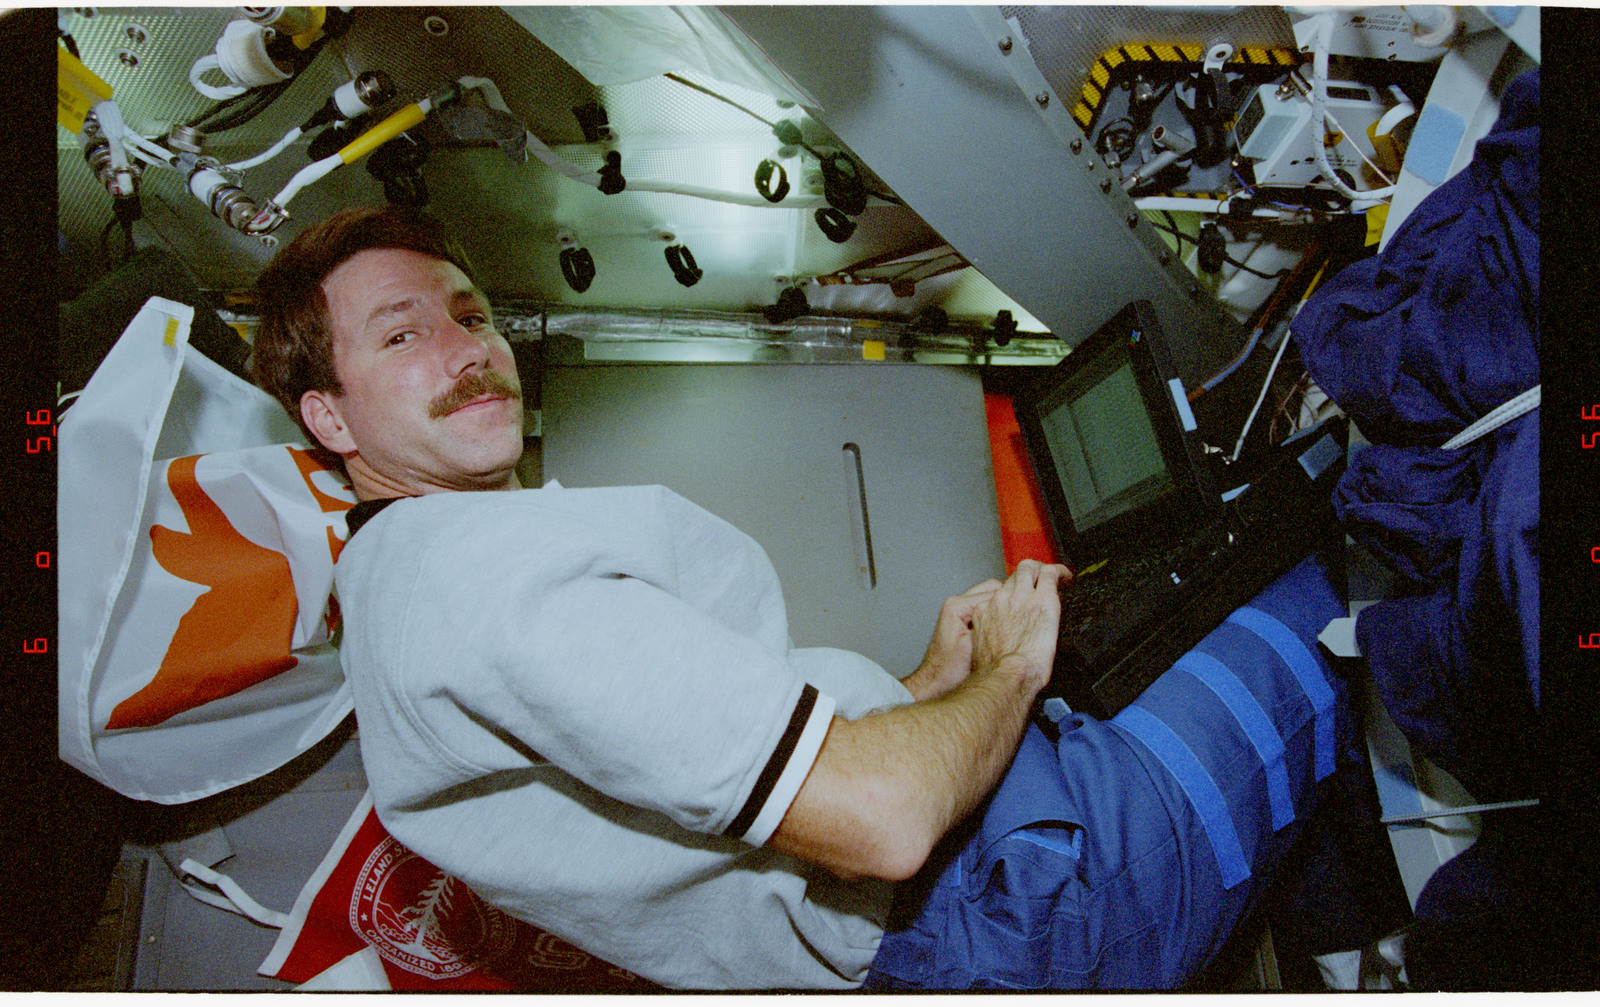 STS080-312-014 - STS-080 - Crewmember activities in the shuttle middeck